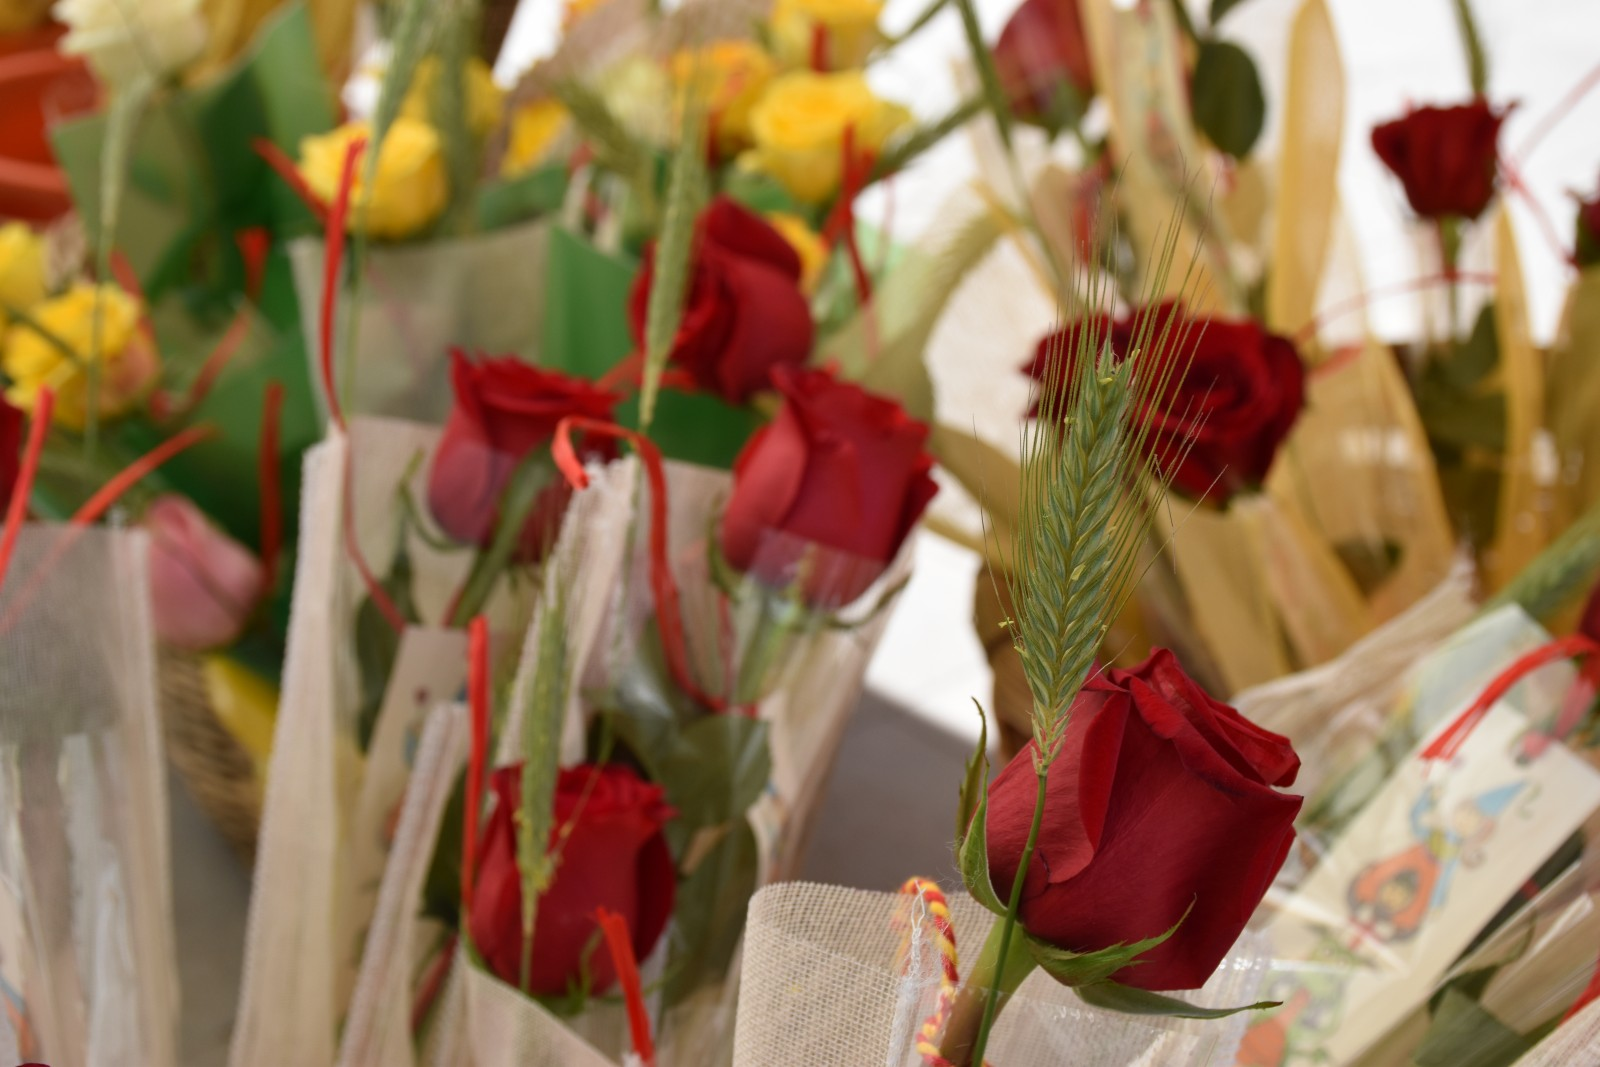 The rose of Sant Jordi. Photo: Jordi López Guevara (Tot Olesa Imatges)